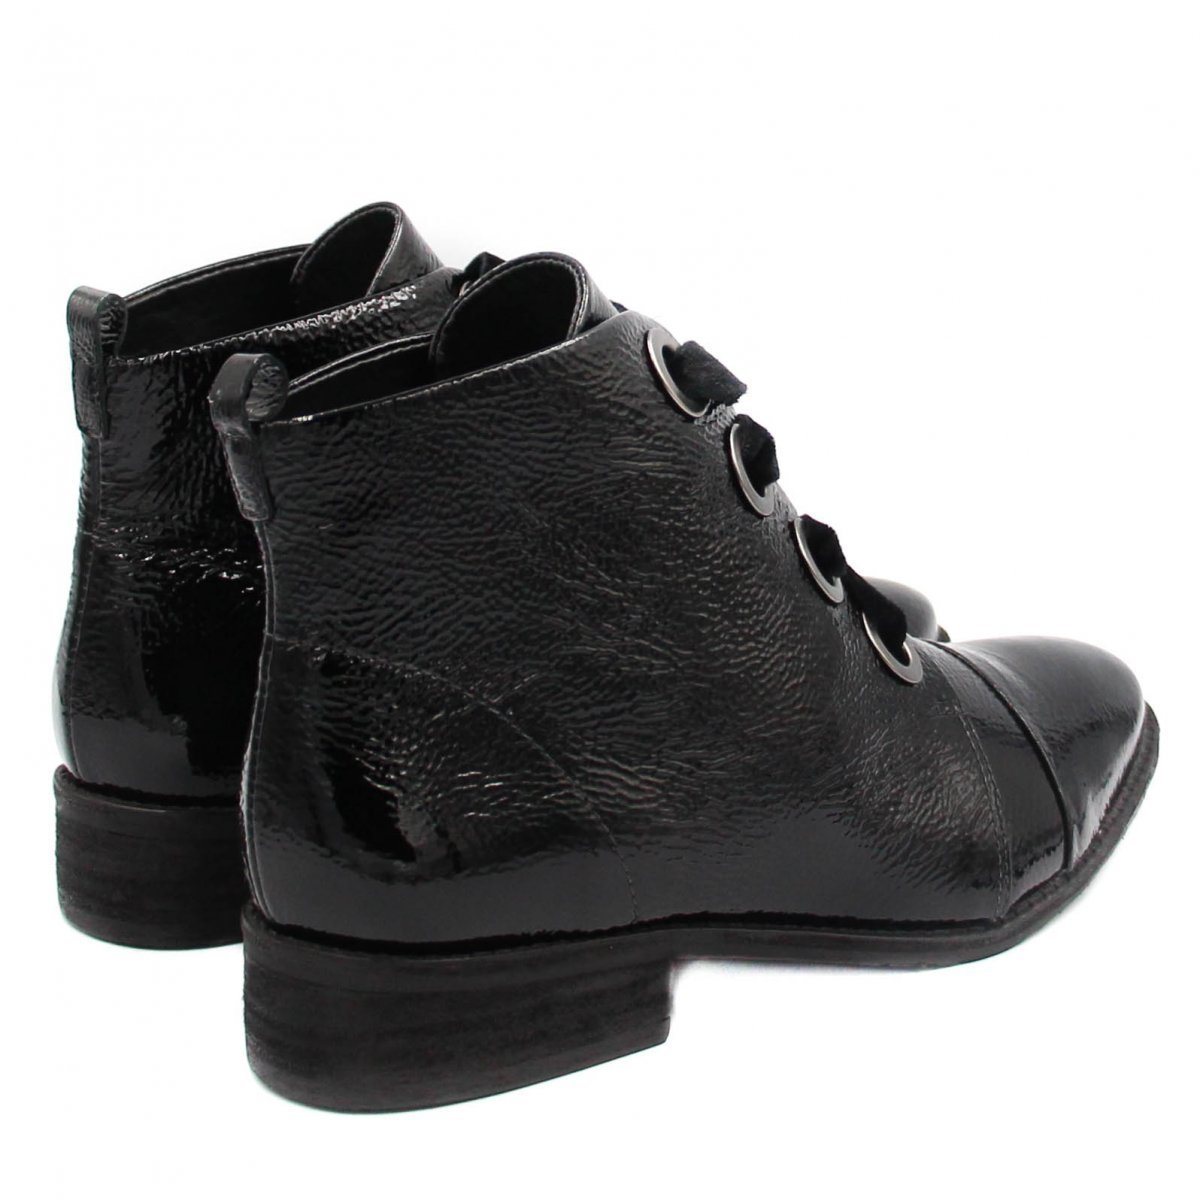 Preto Boot Shoes Zariff Feminina Bota Verniz Curto Cano Ankle 4U48O